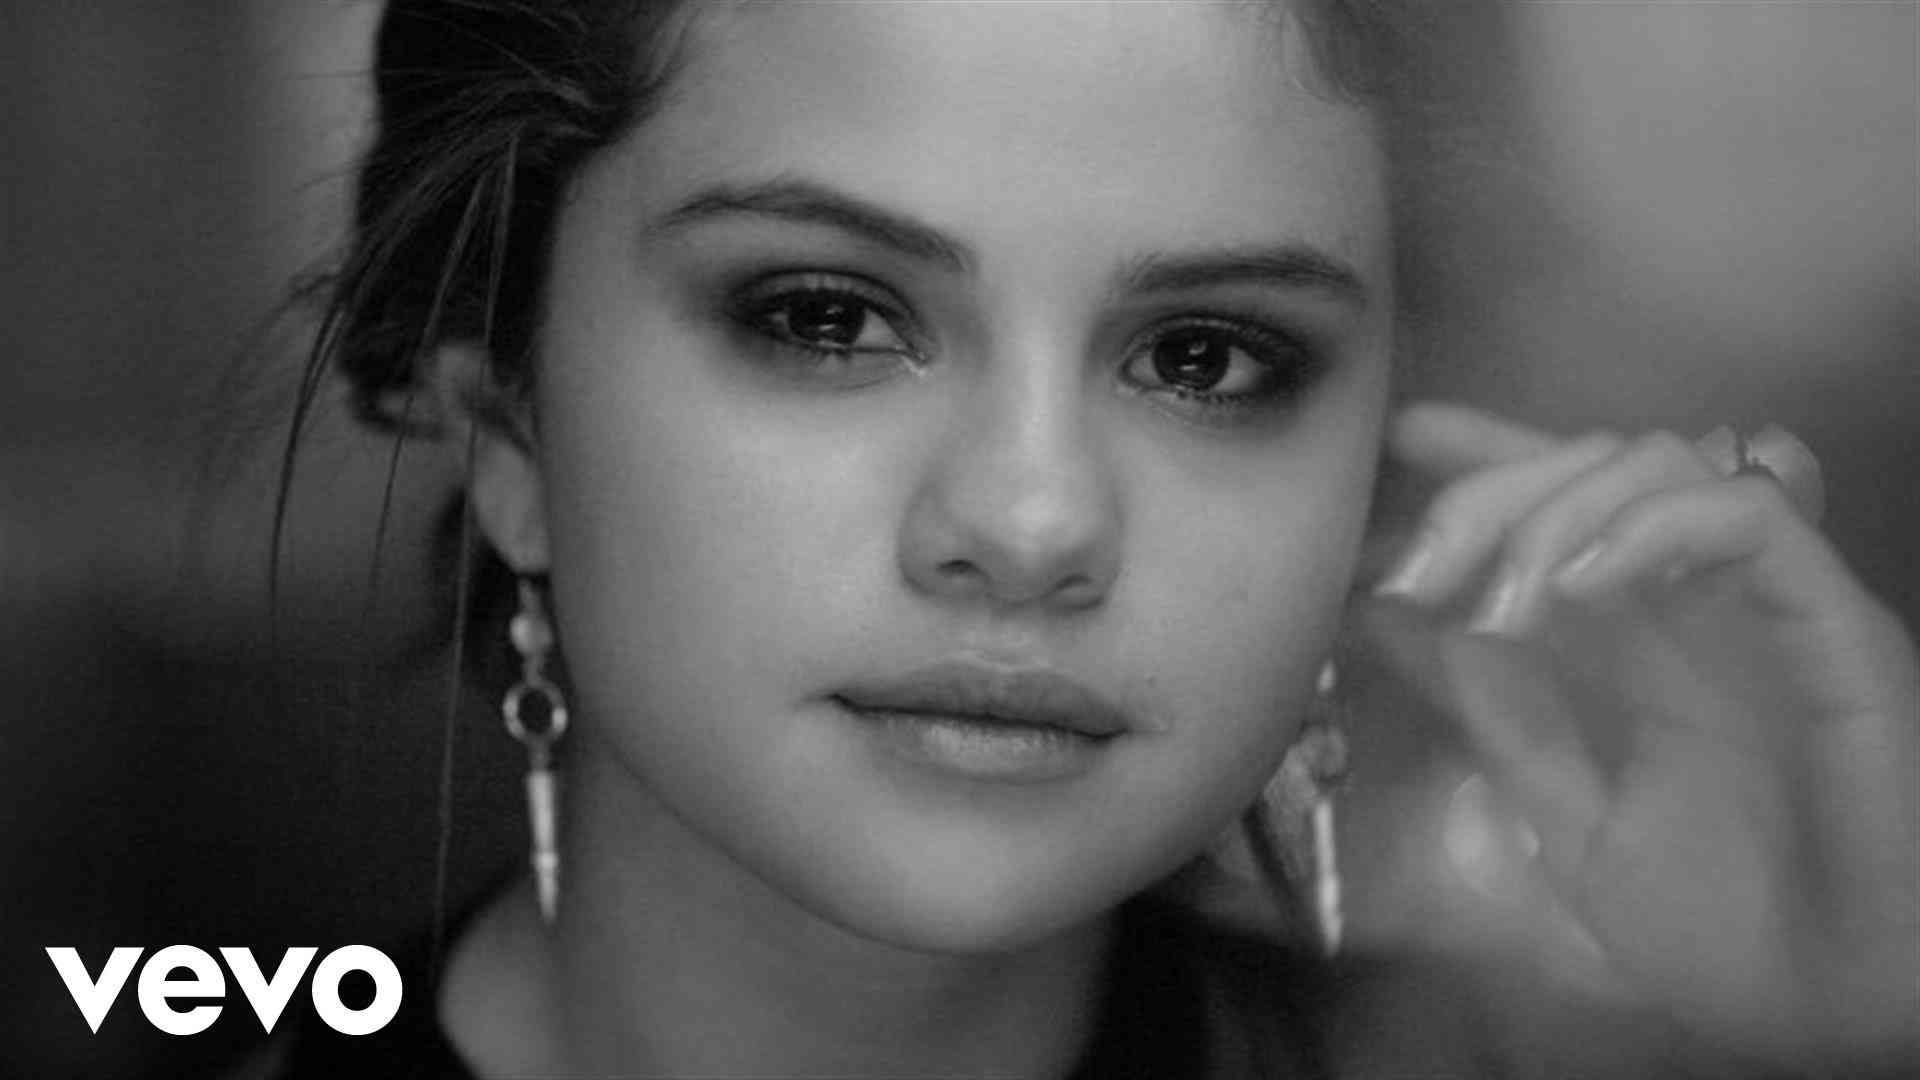 Selena Gomez - The Heart Wants What It Wants (Official Video) - YouTube